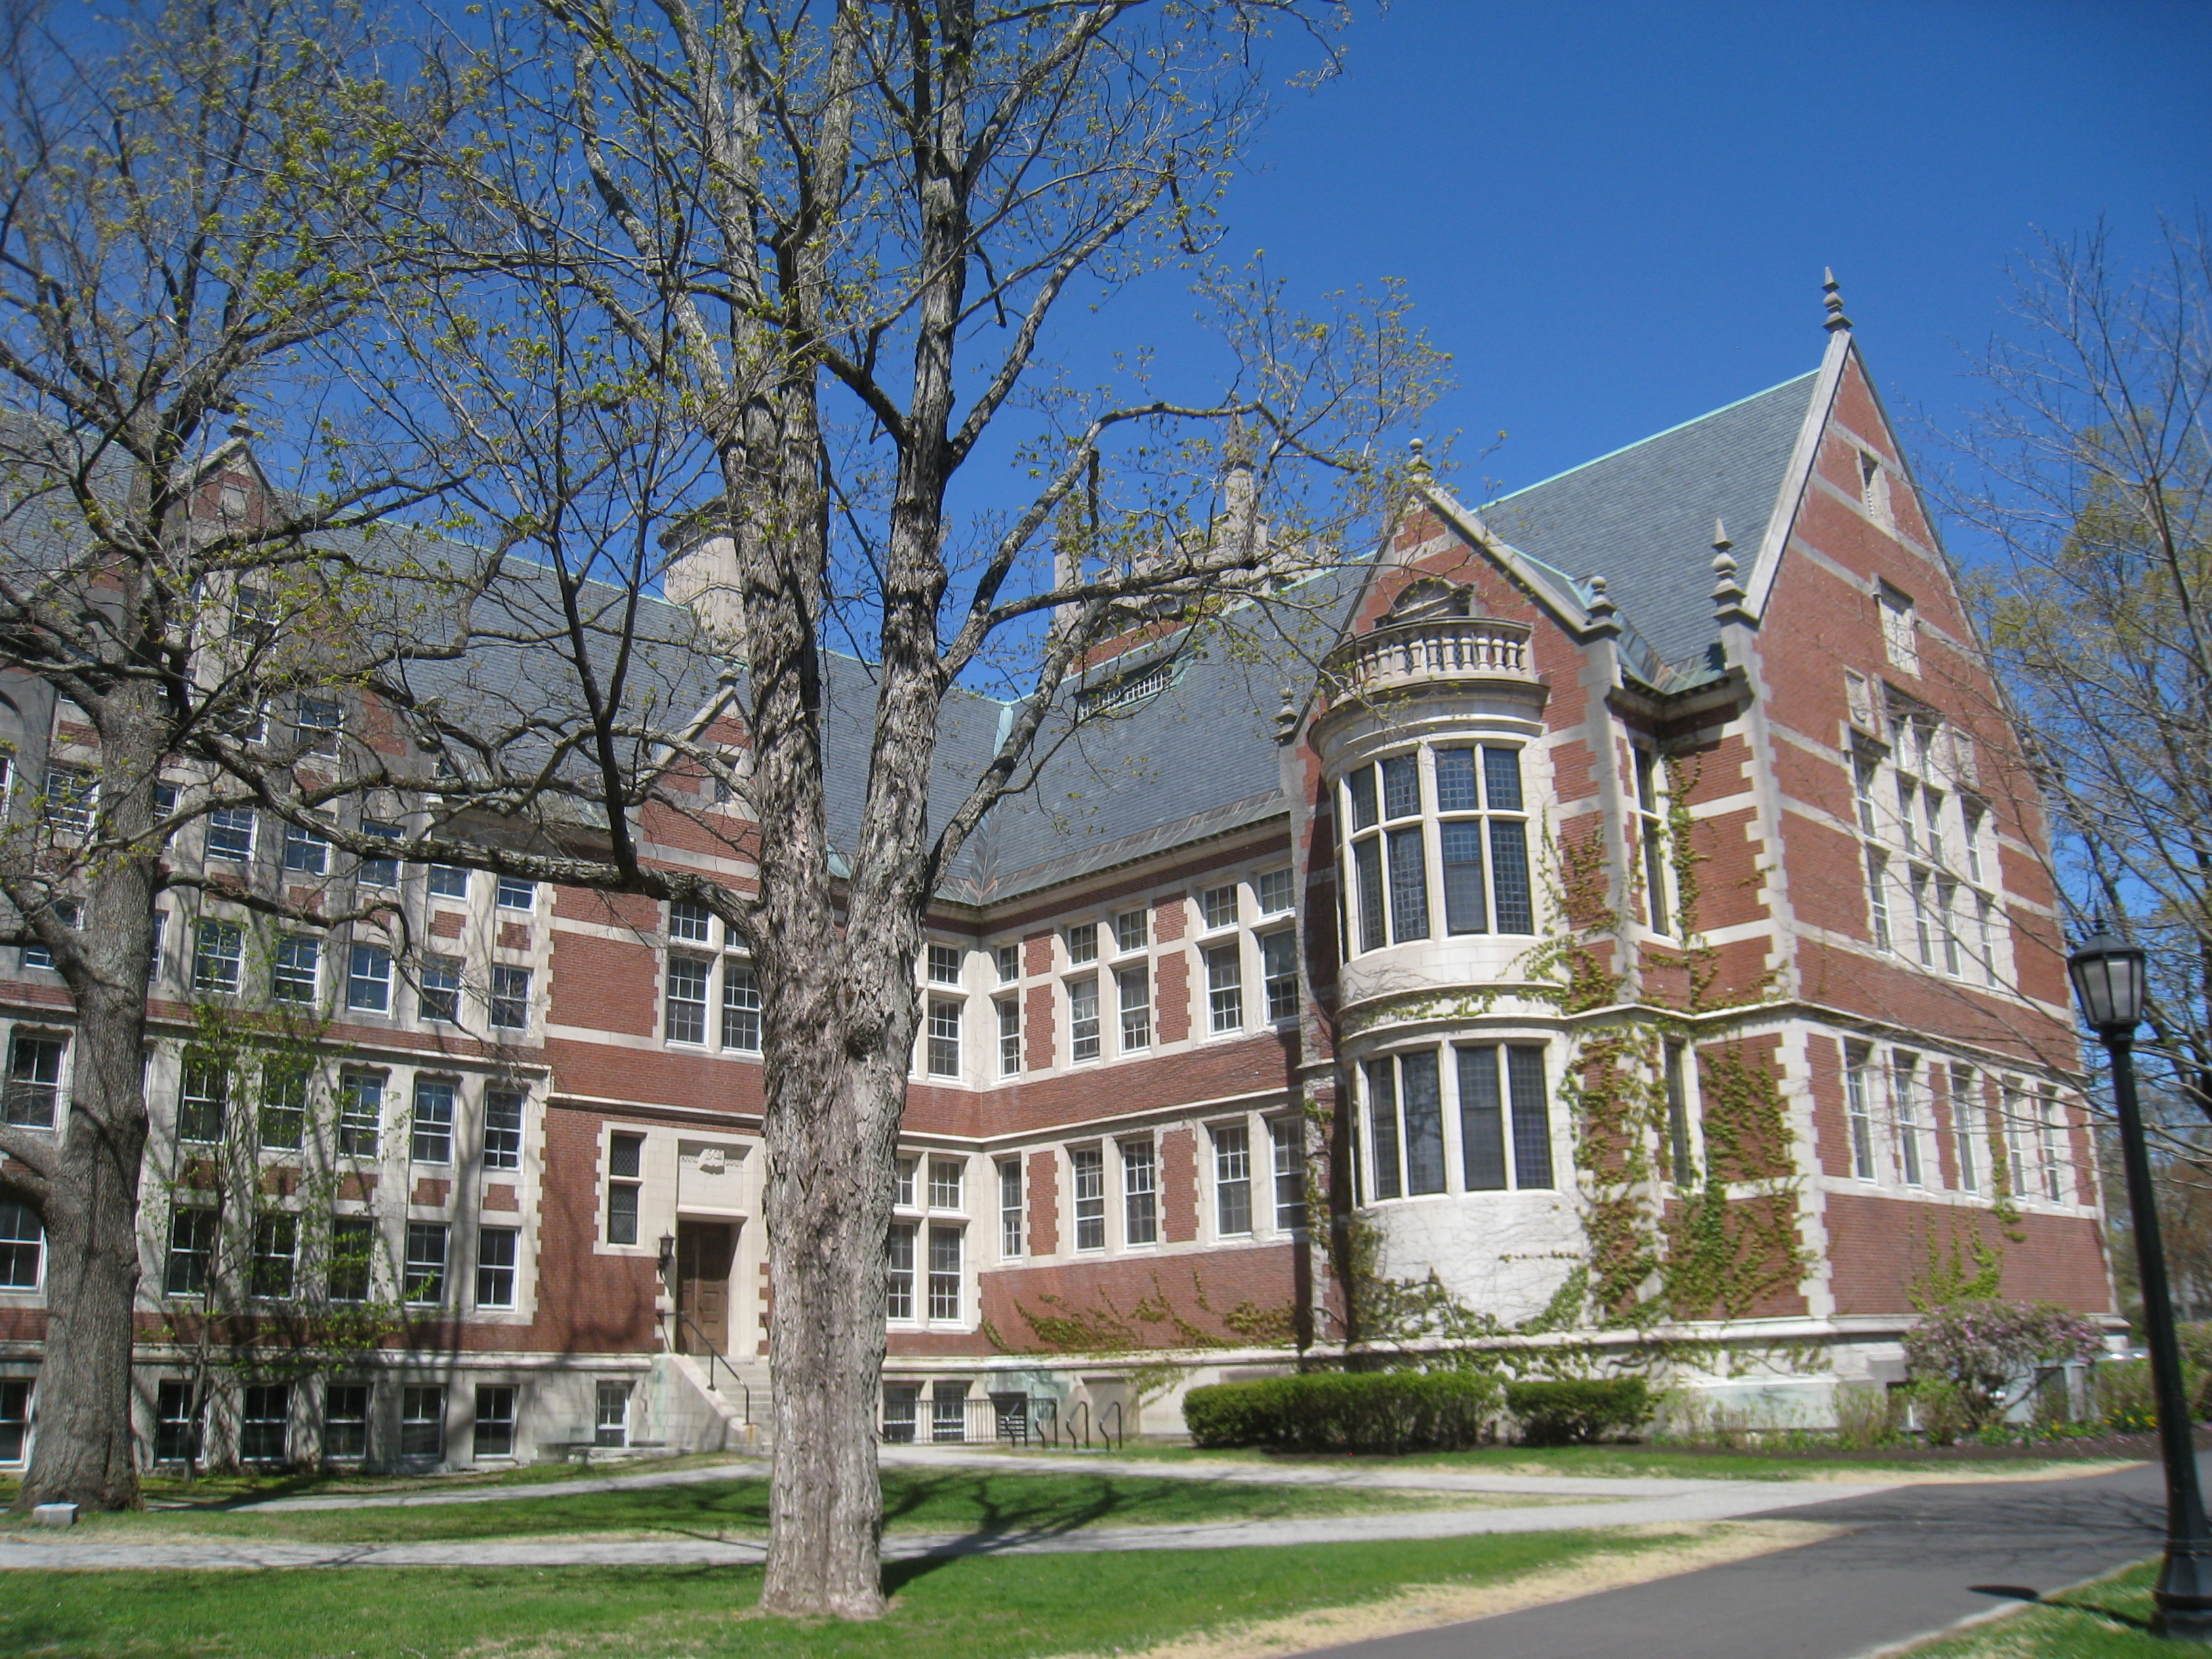 https://upload.wikimedia.org/wikipedia/commons/6/65/Hubbard_Hall_-_Bowdoin_College_-_IMG_7782.JPG